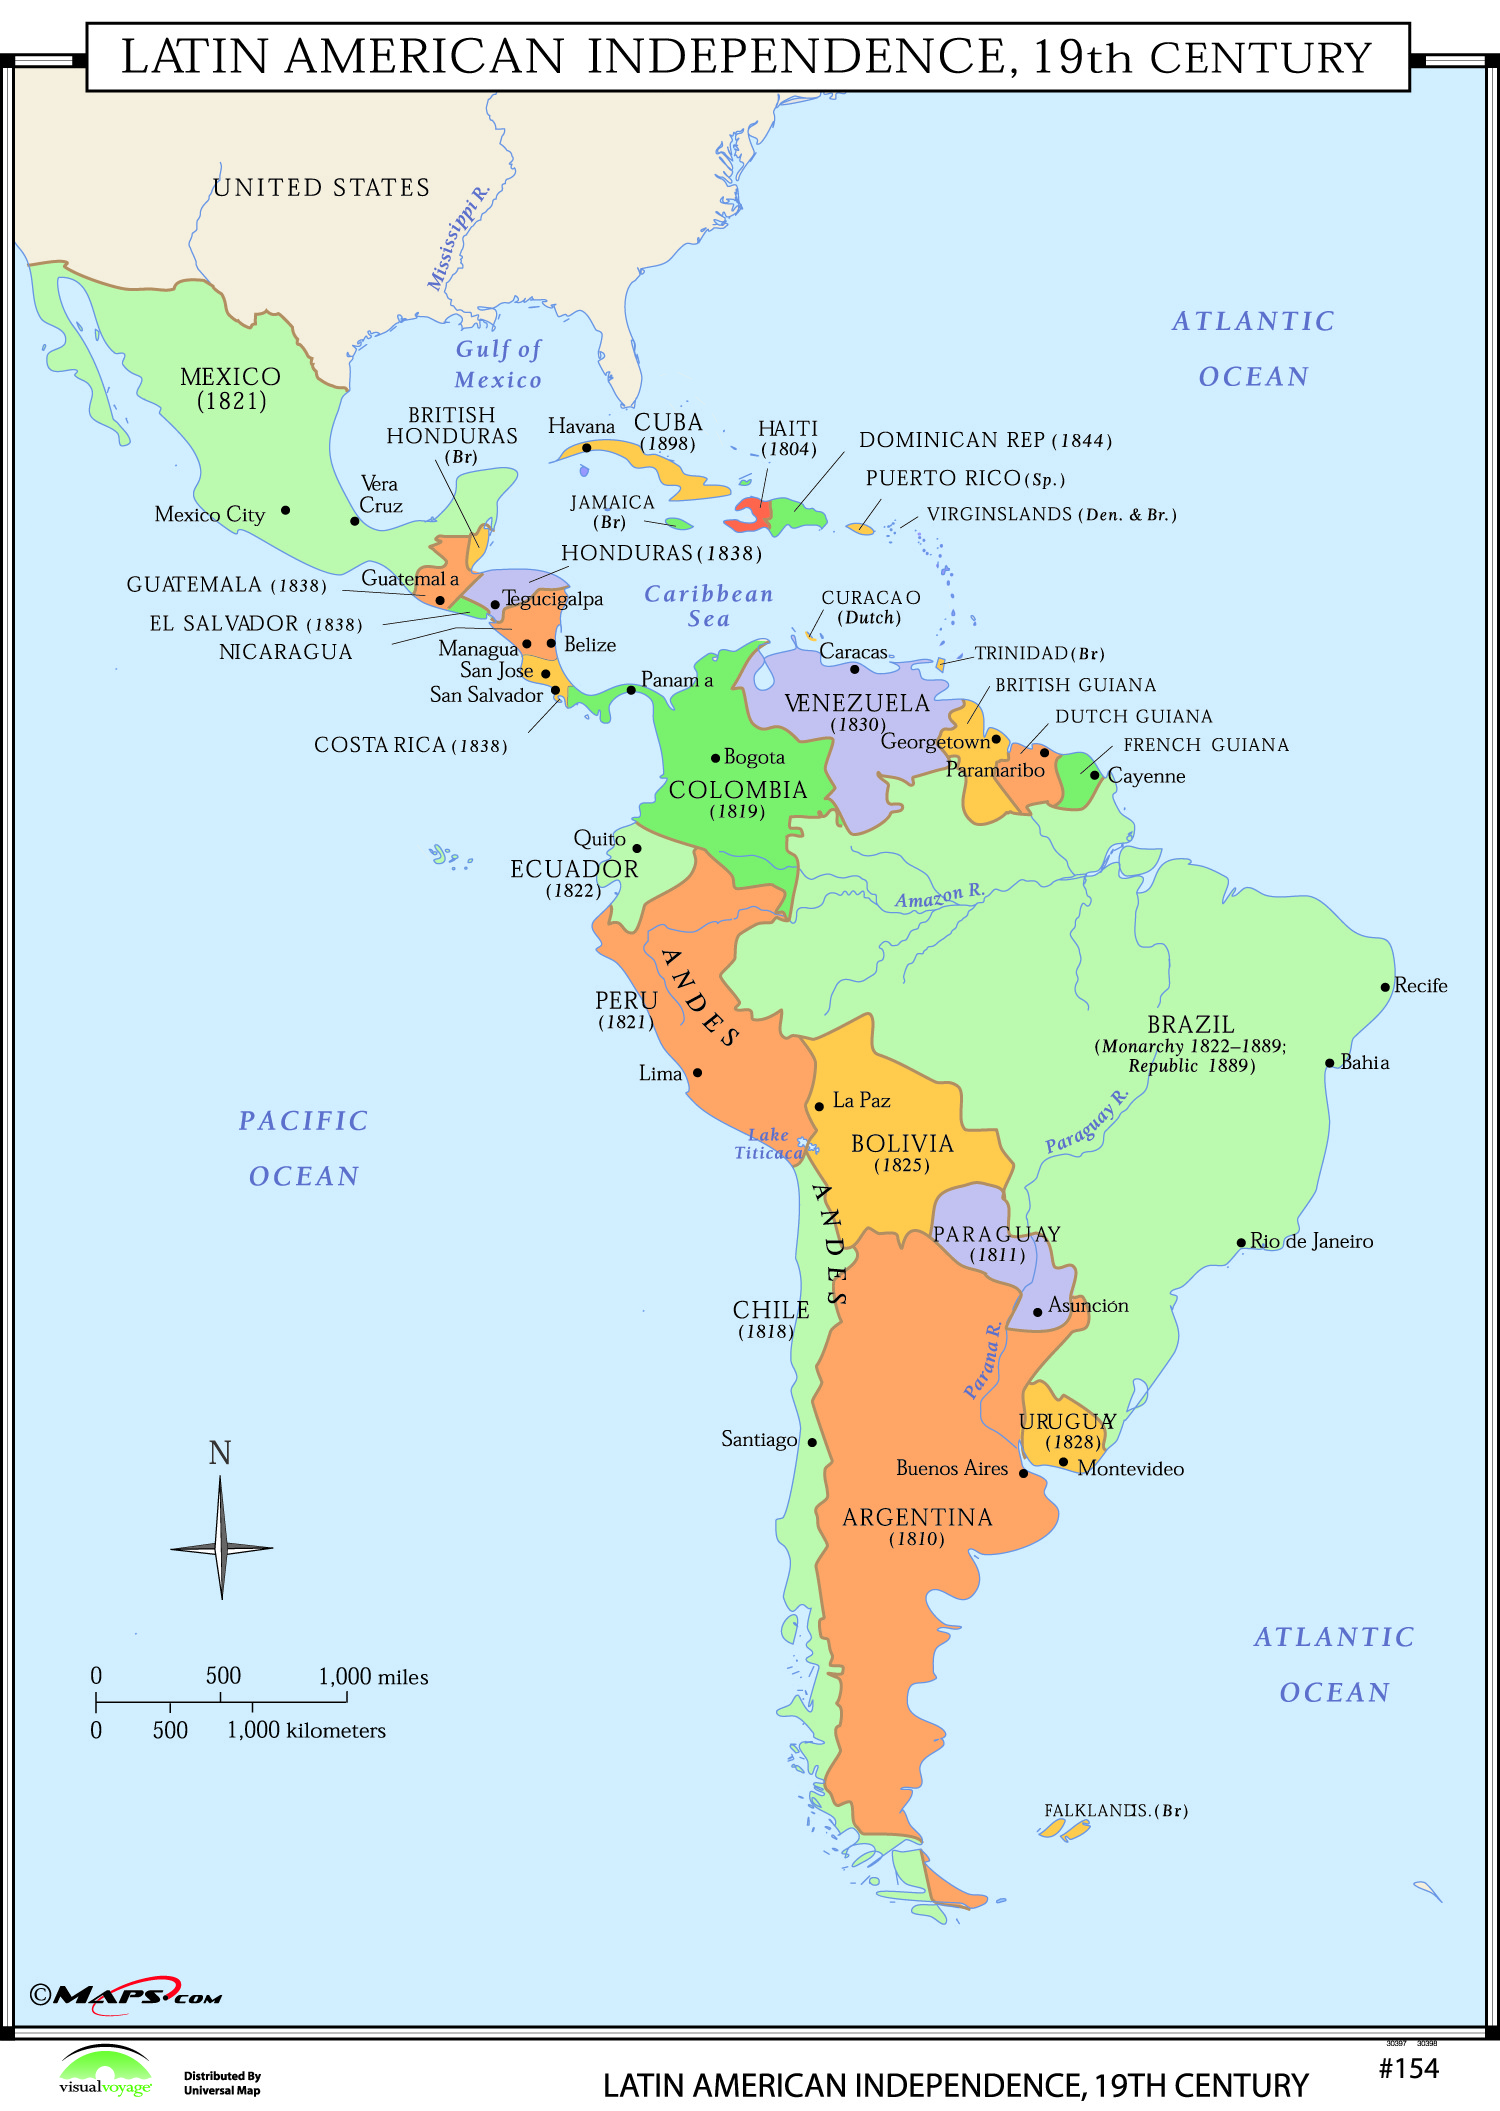 a look into latin american revolutions of the 19th century History of latin america including caudíllos 19th - 20th century: from the 1830s each new latin american republic goes its own way.